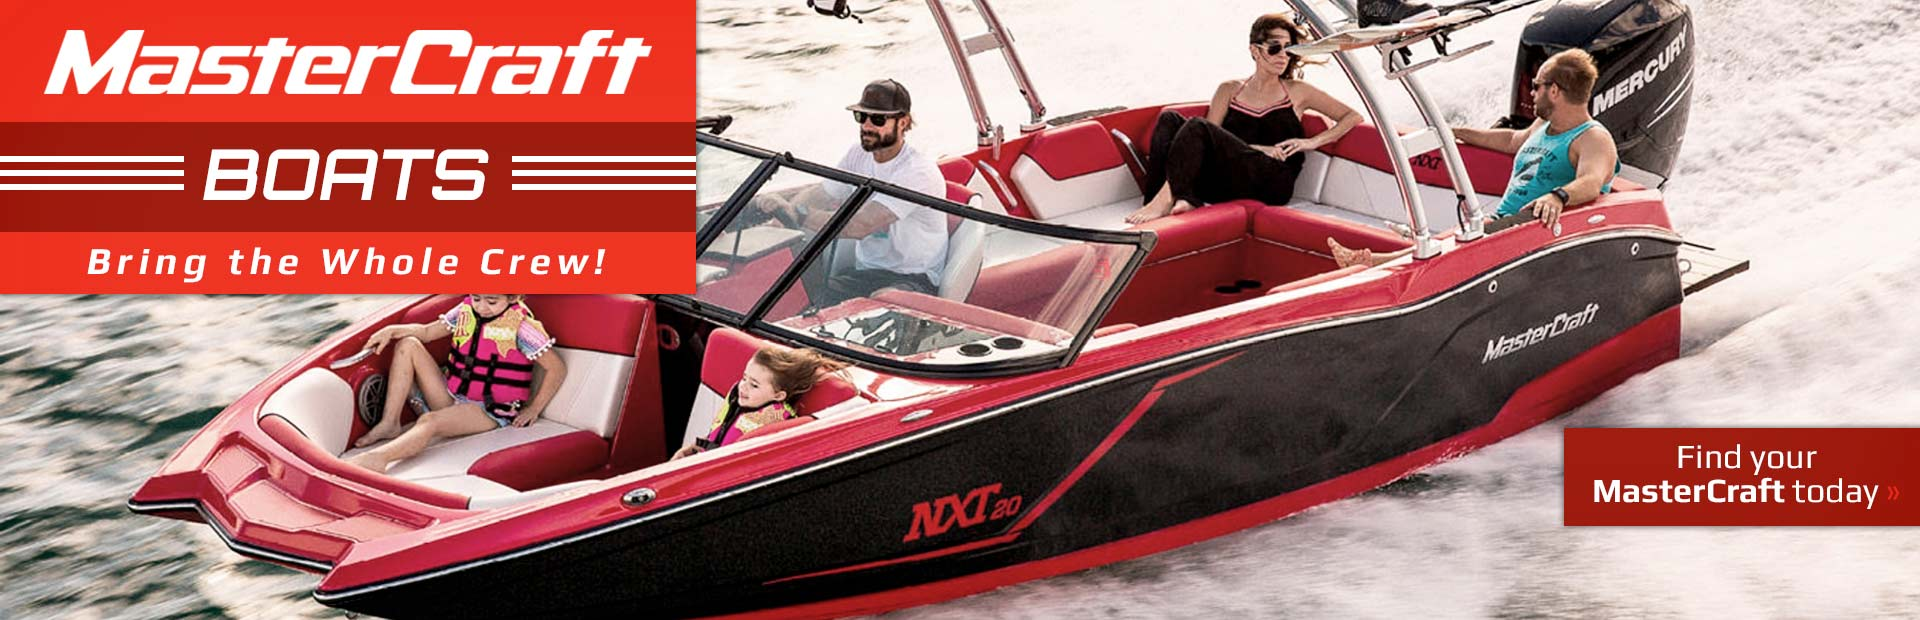 MasterCraft Boats: Click here to view the models.